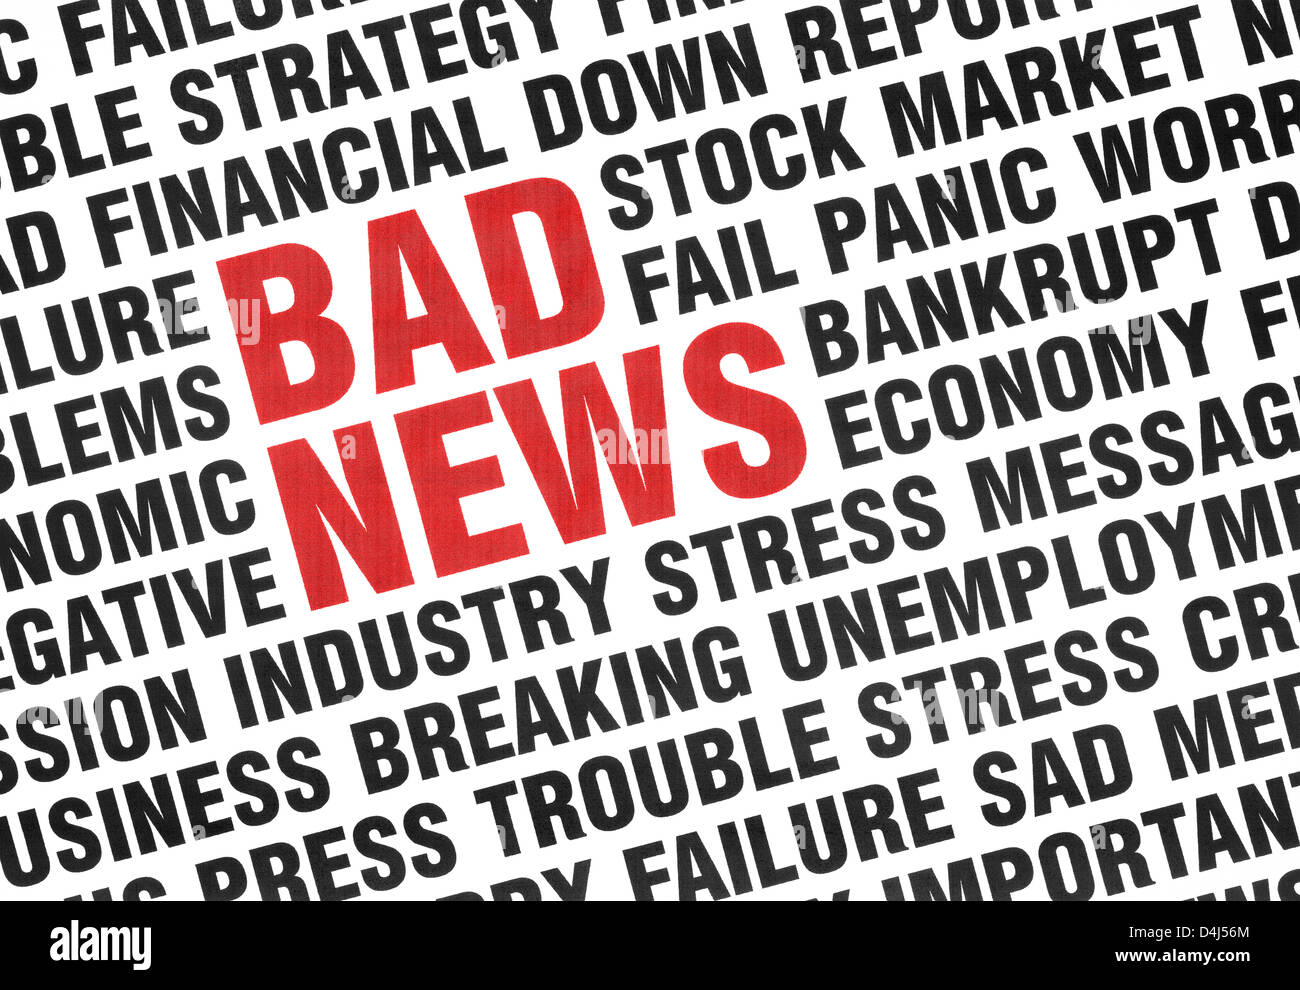 Conceptual print of Bad News with angled uppercase text expressing failure, crisis, panic, fear and economy depression. - Stock Image